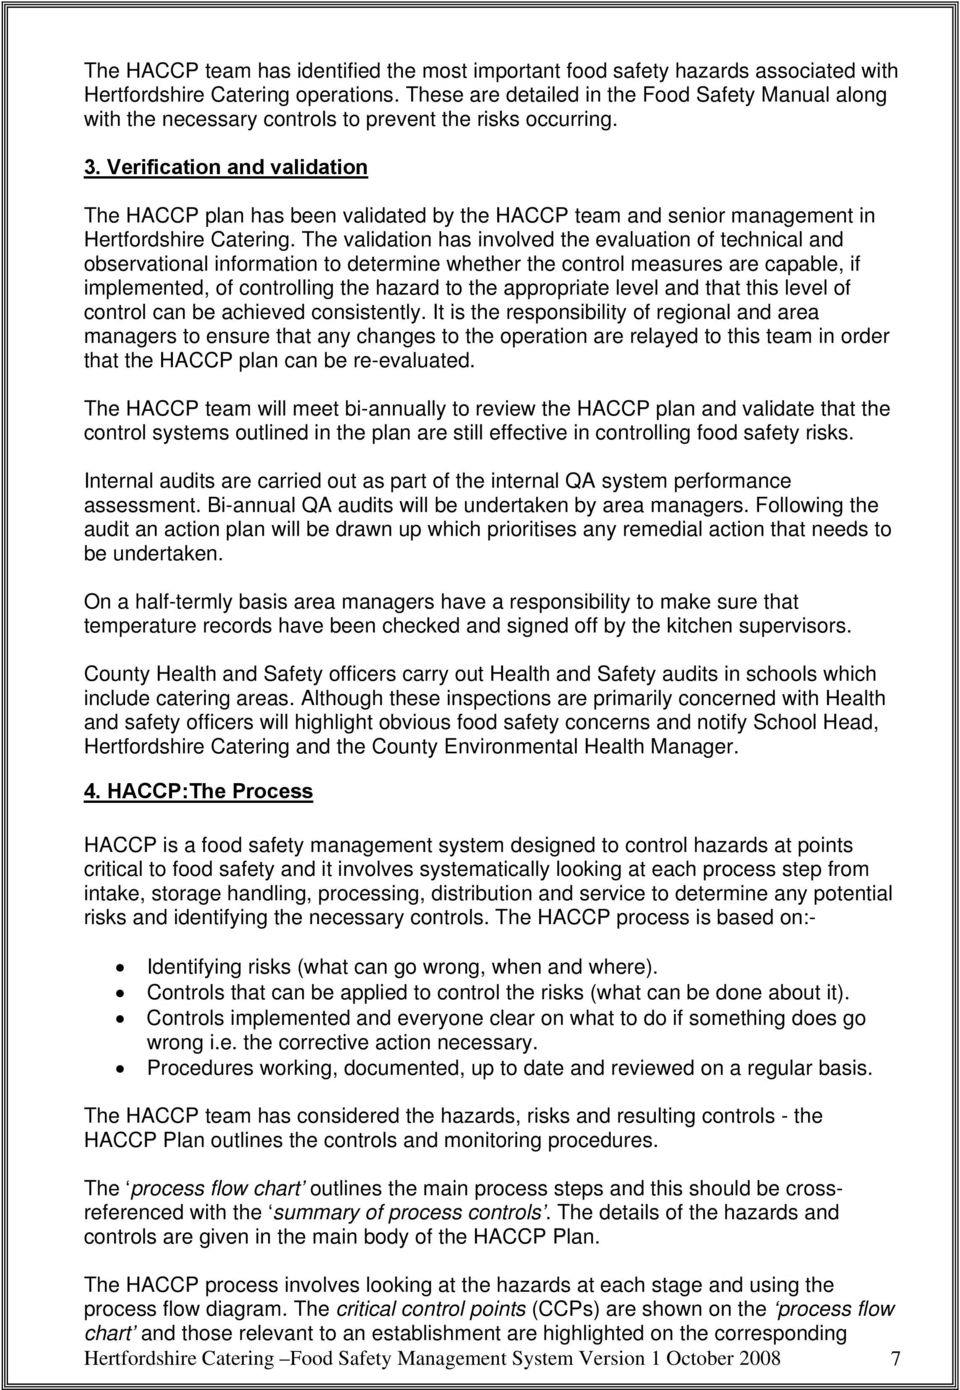 Verification and validation The HACCP plan has been validated by the HACCP team and senior management in Hertfordshire Catering.